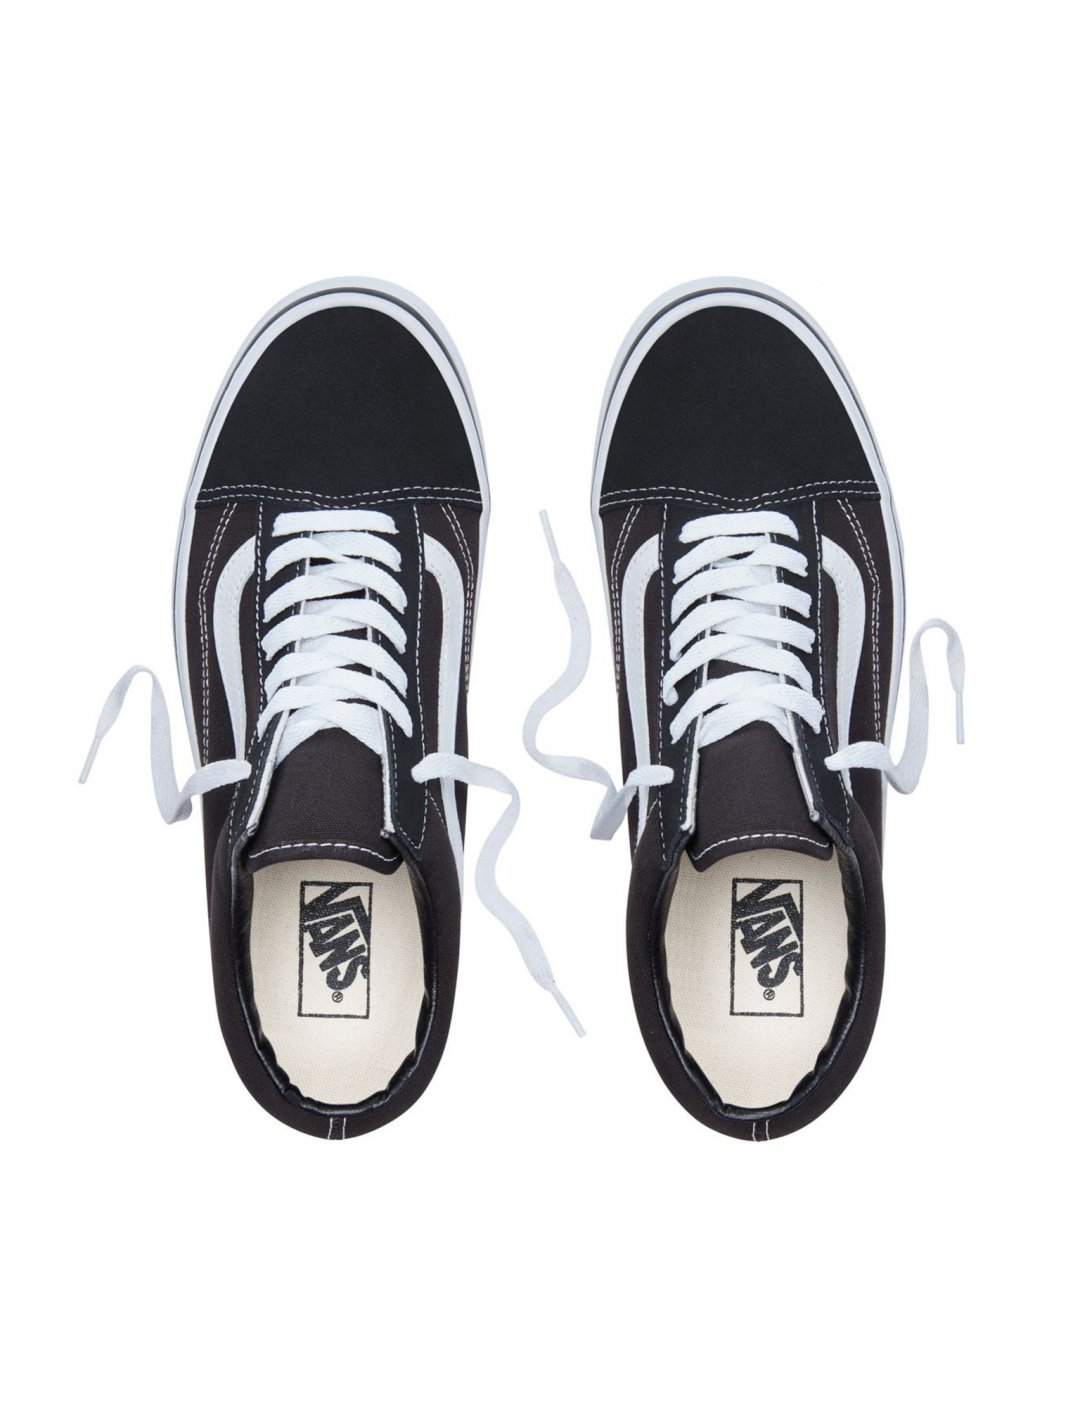 "GASHI's Old Skool Shoes {""id"":5,""product_section_id"":1,""name"":""Clothing"",""order"":5} Vans"